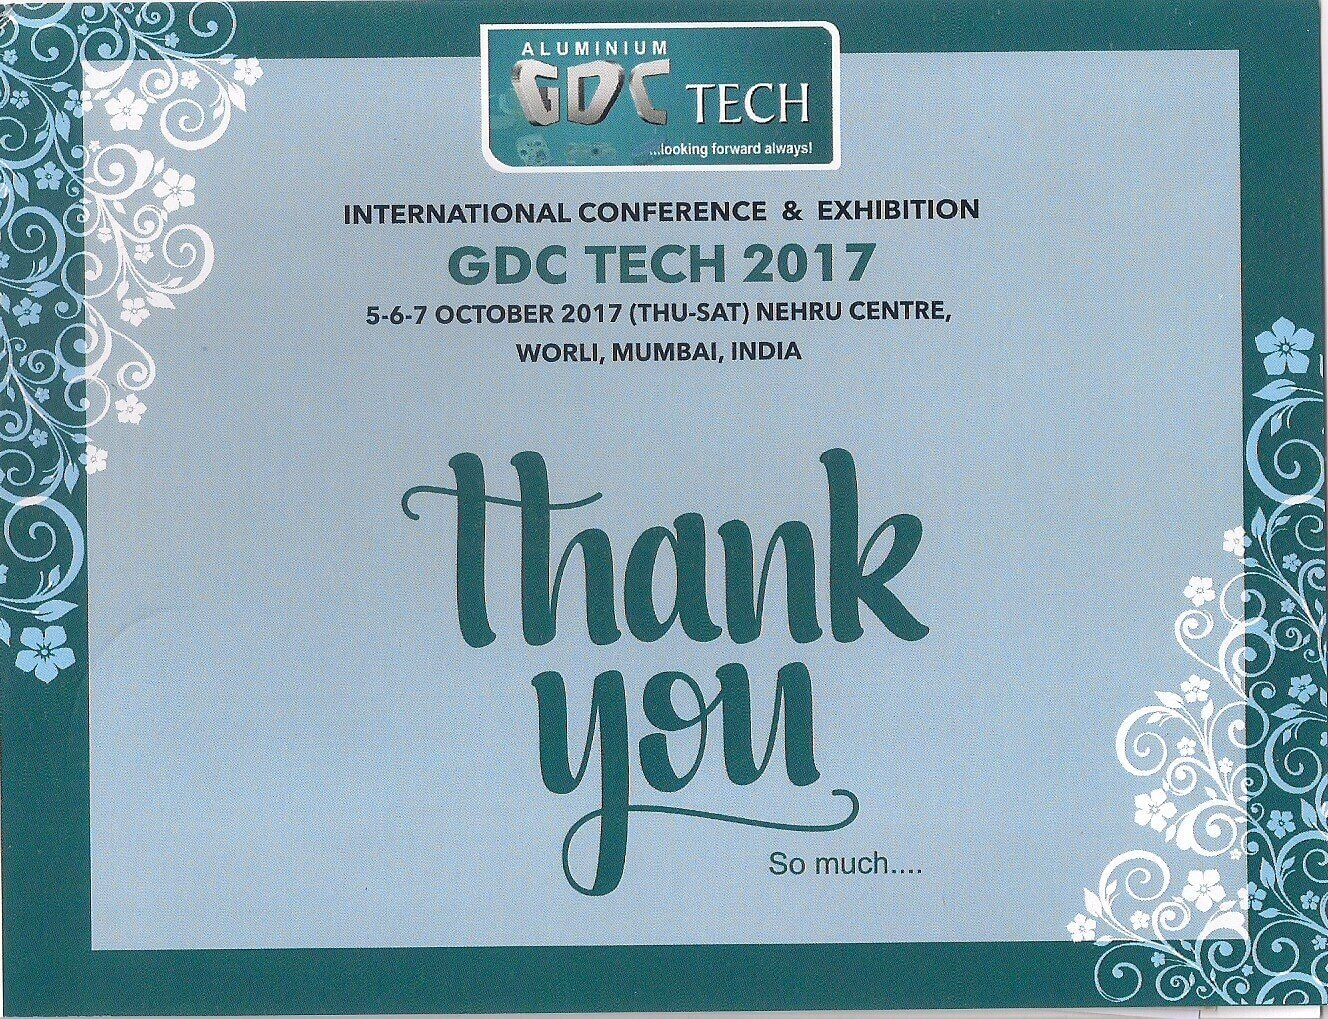 GDCTech 2017 Conference in Mumbai